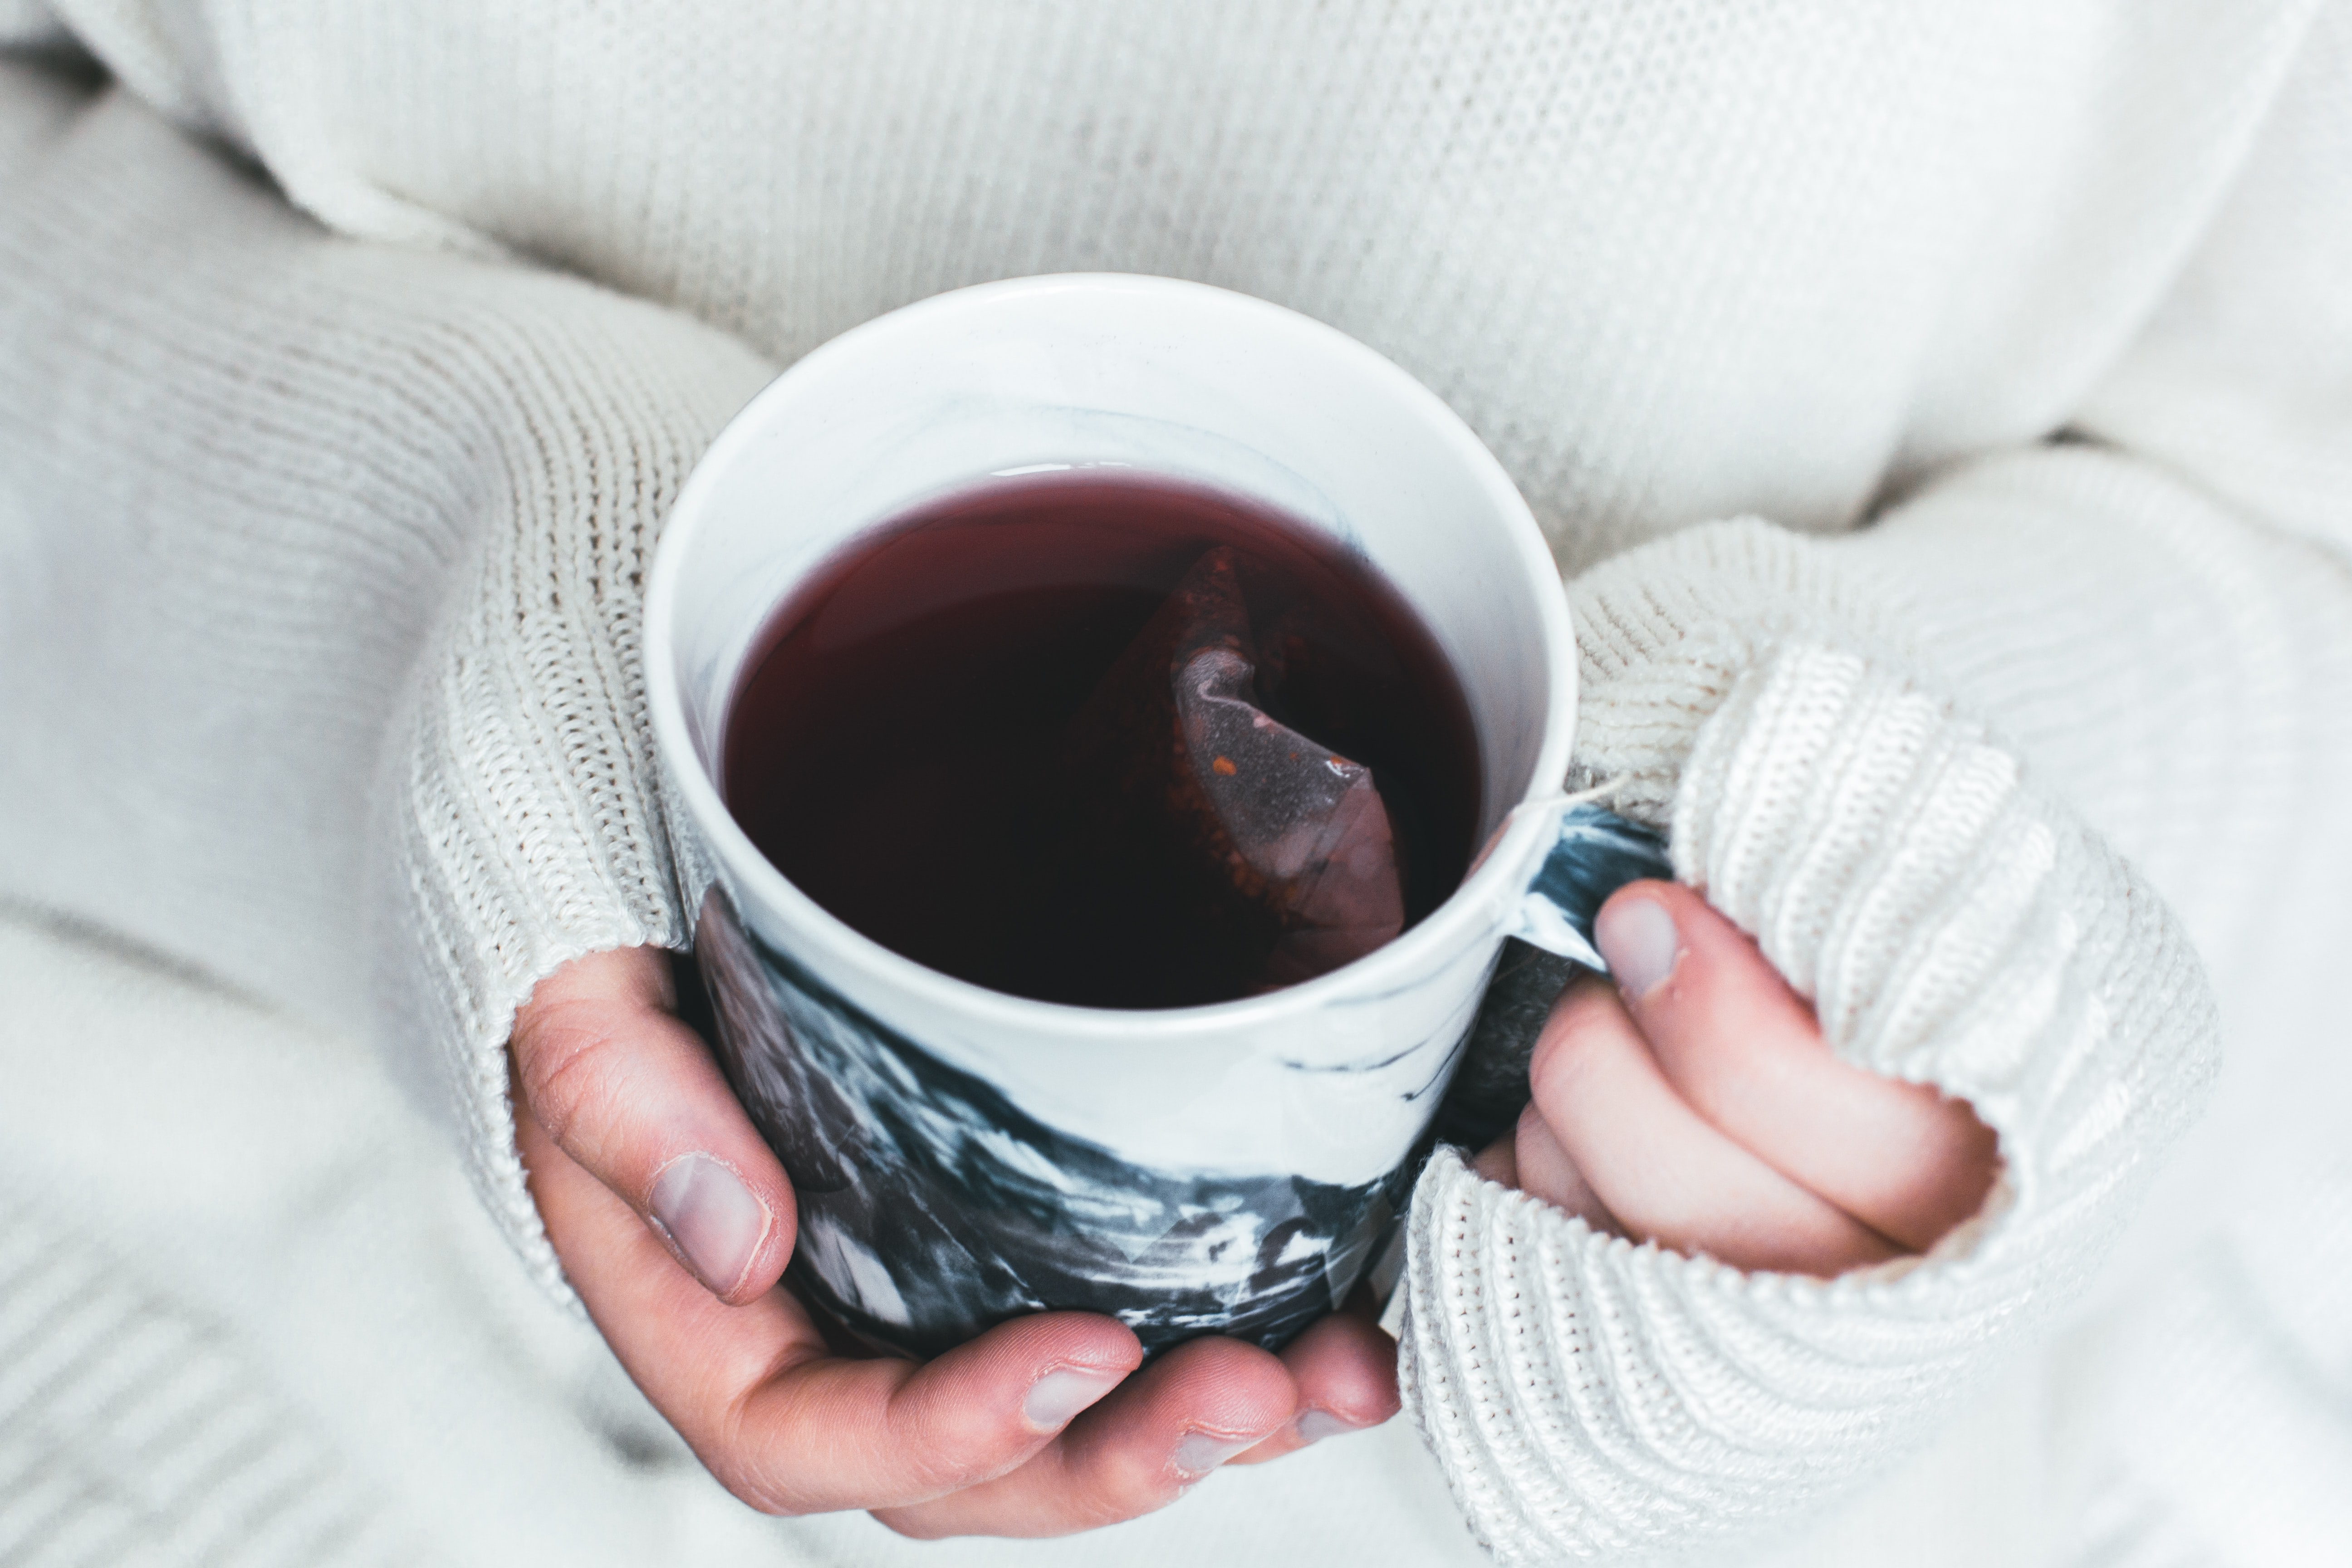 person holding white and black cup with teabag inside